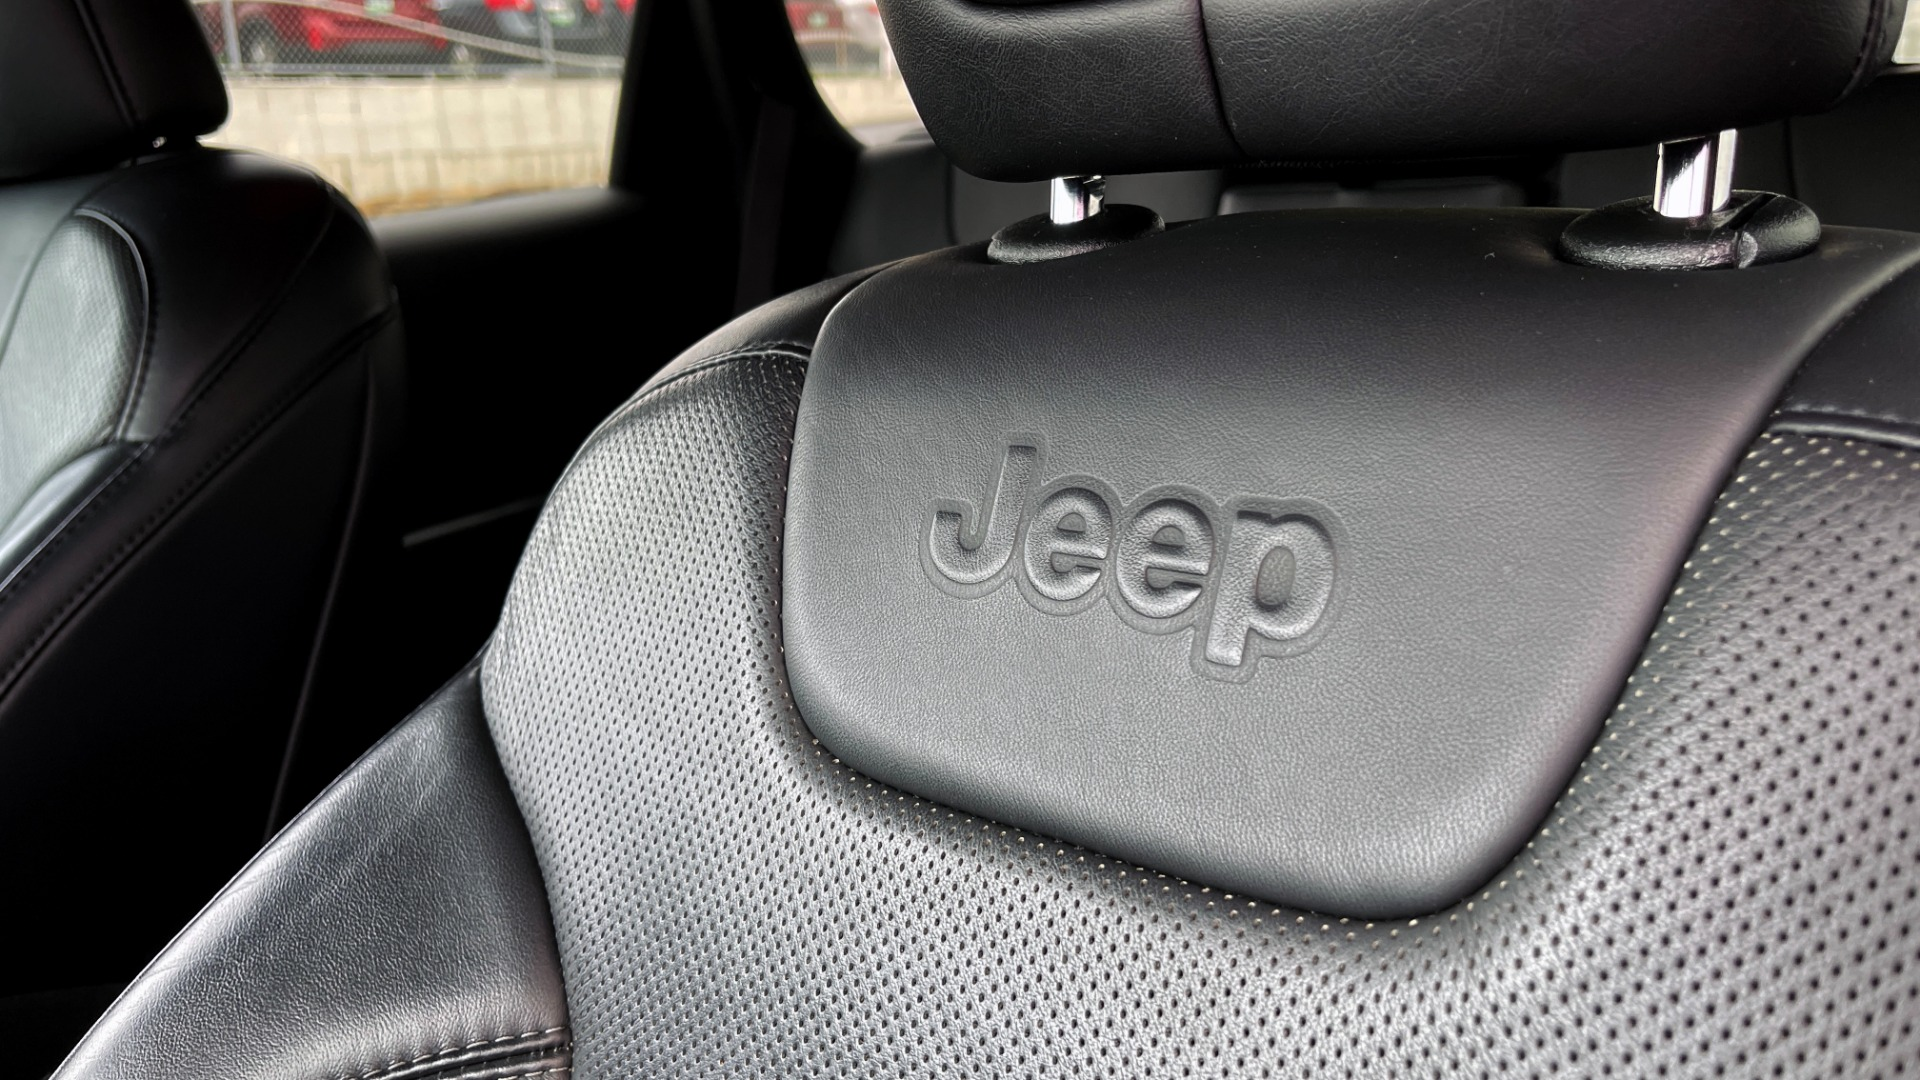 Used 2019 Jeep CHEROKEE LIMITED 2.4L / FWD / APPLE CARPLAY / KEYLESS-GO / REARVIEW for sale $24,395 at Formula Imports in Charlotte NC 28227 28